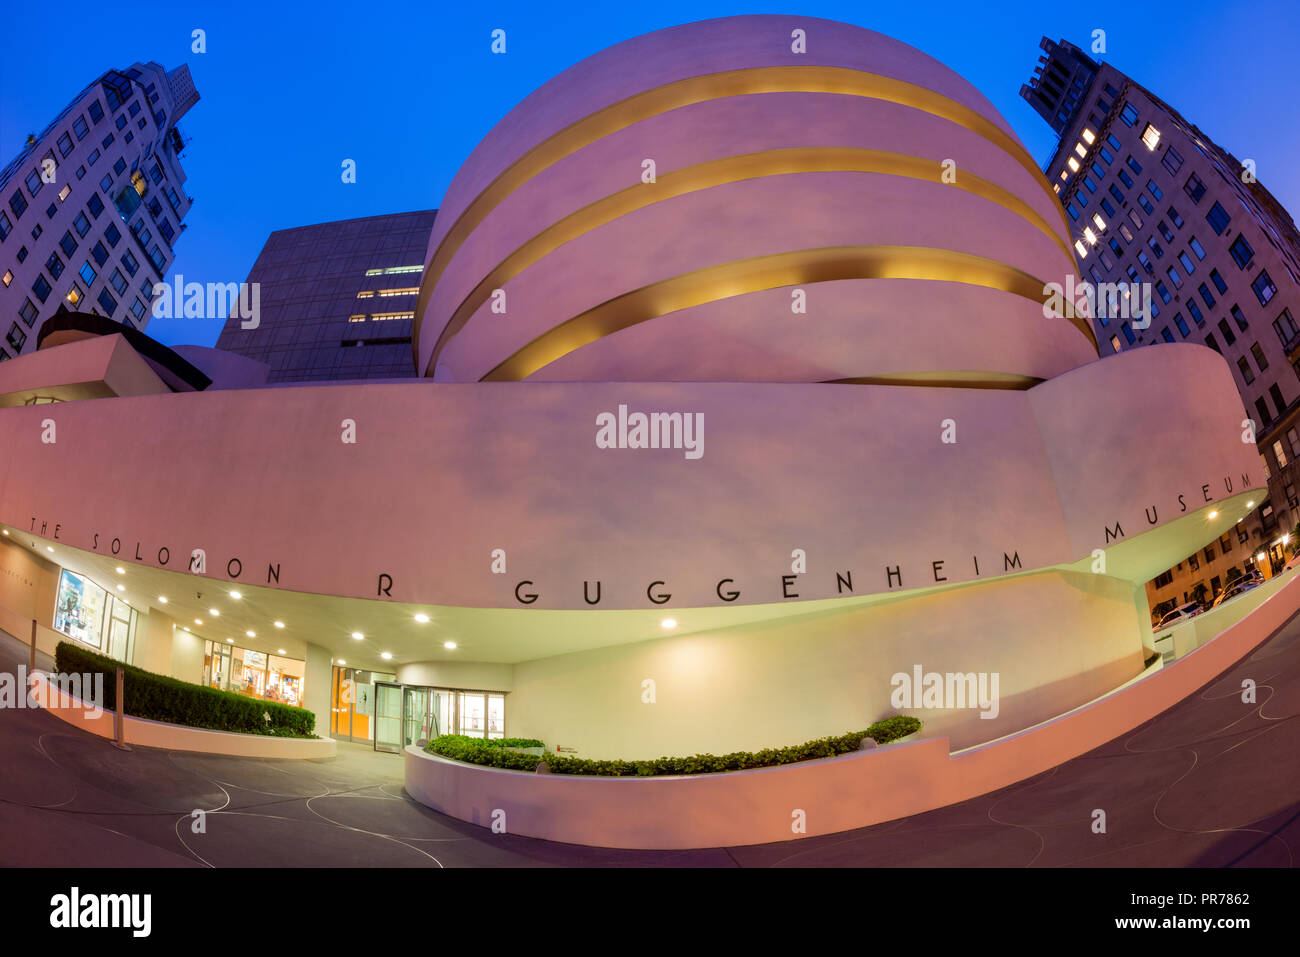 The Solomon R. Guggenheim Museum of modern and contemporary art at Fifth Avenue in Manhattan New York City USA Stock Photo